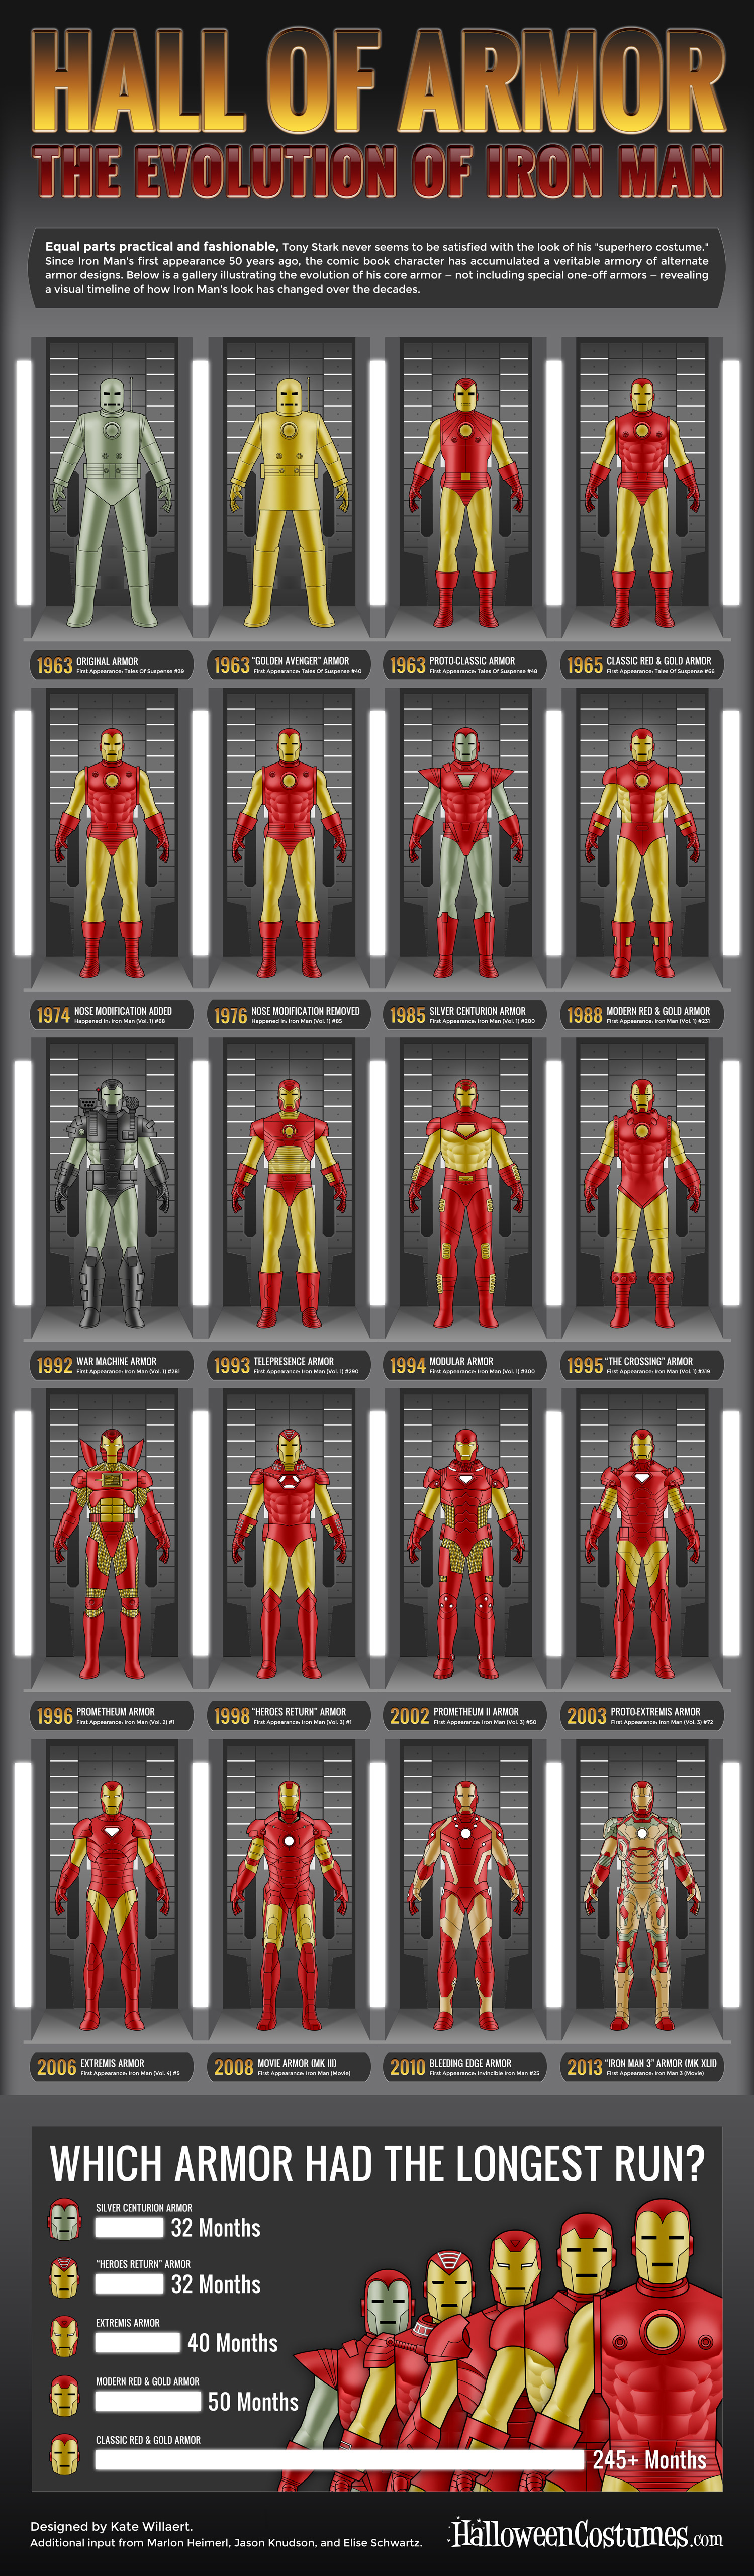 HalloweenCostumes.com: Wall of Armor, the Evolution of Iron Man